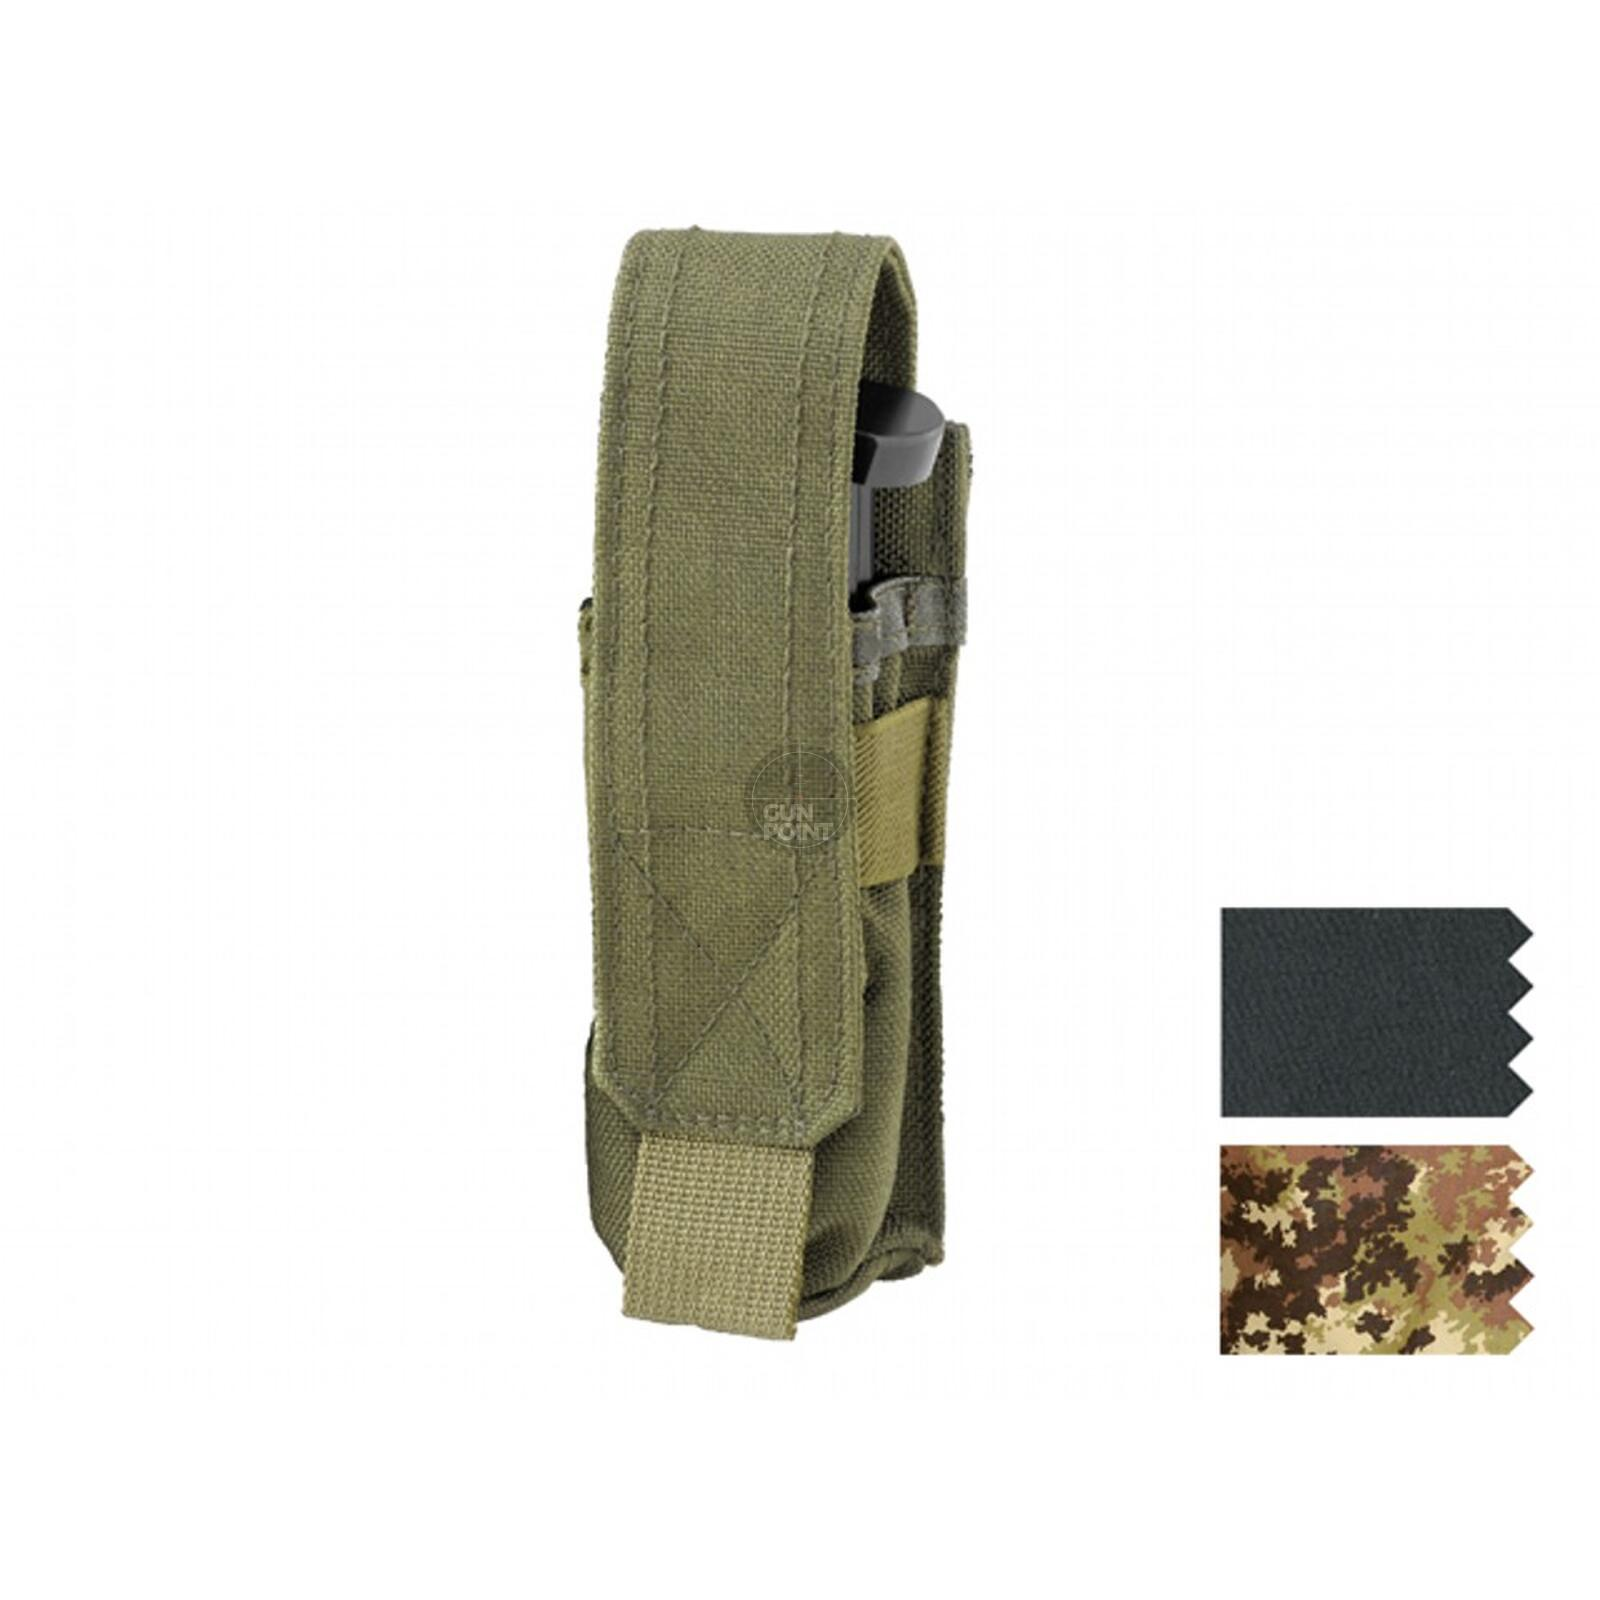 Defcon 5 Single Pistol Pouch Magazintasche OD Green